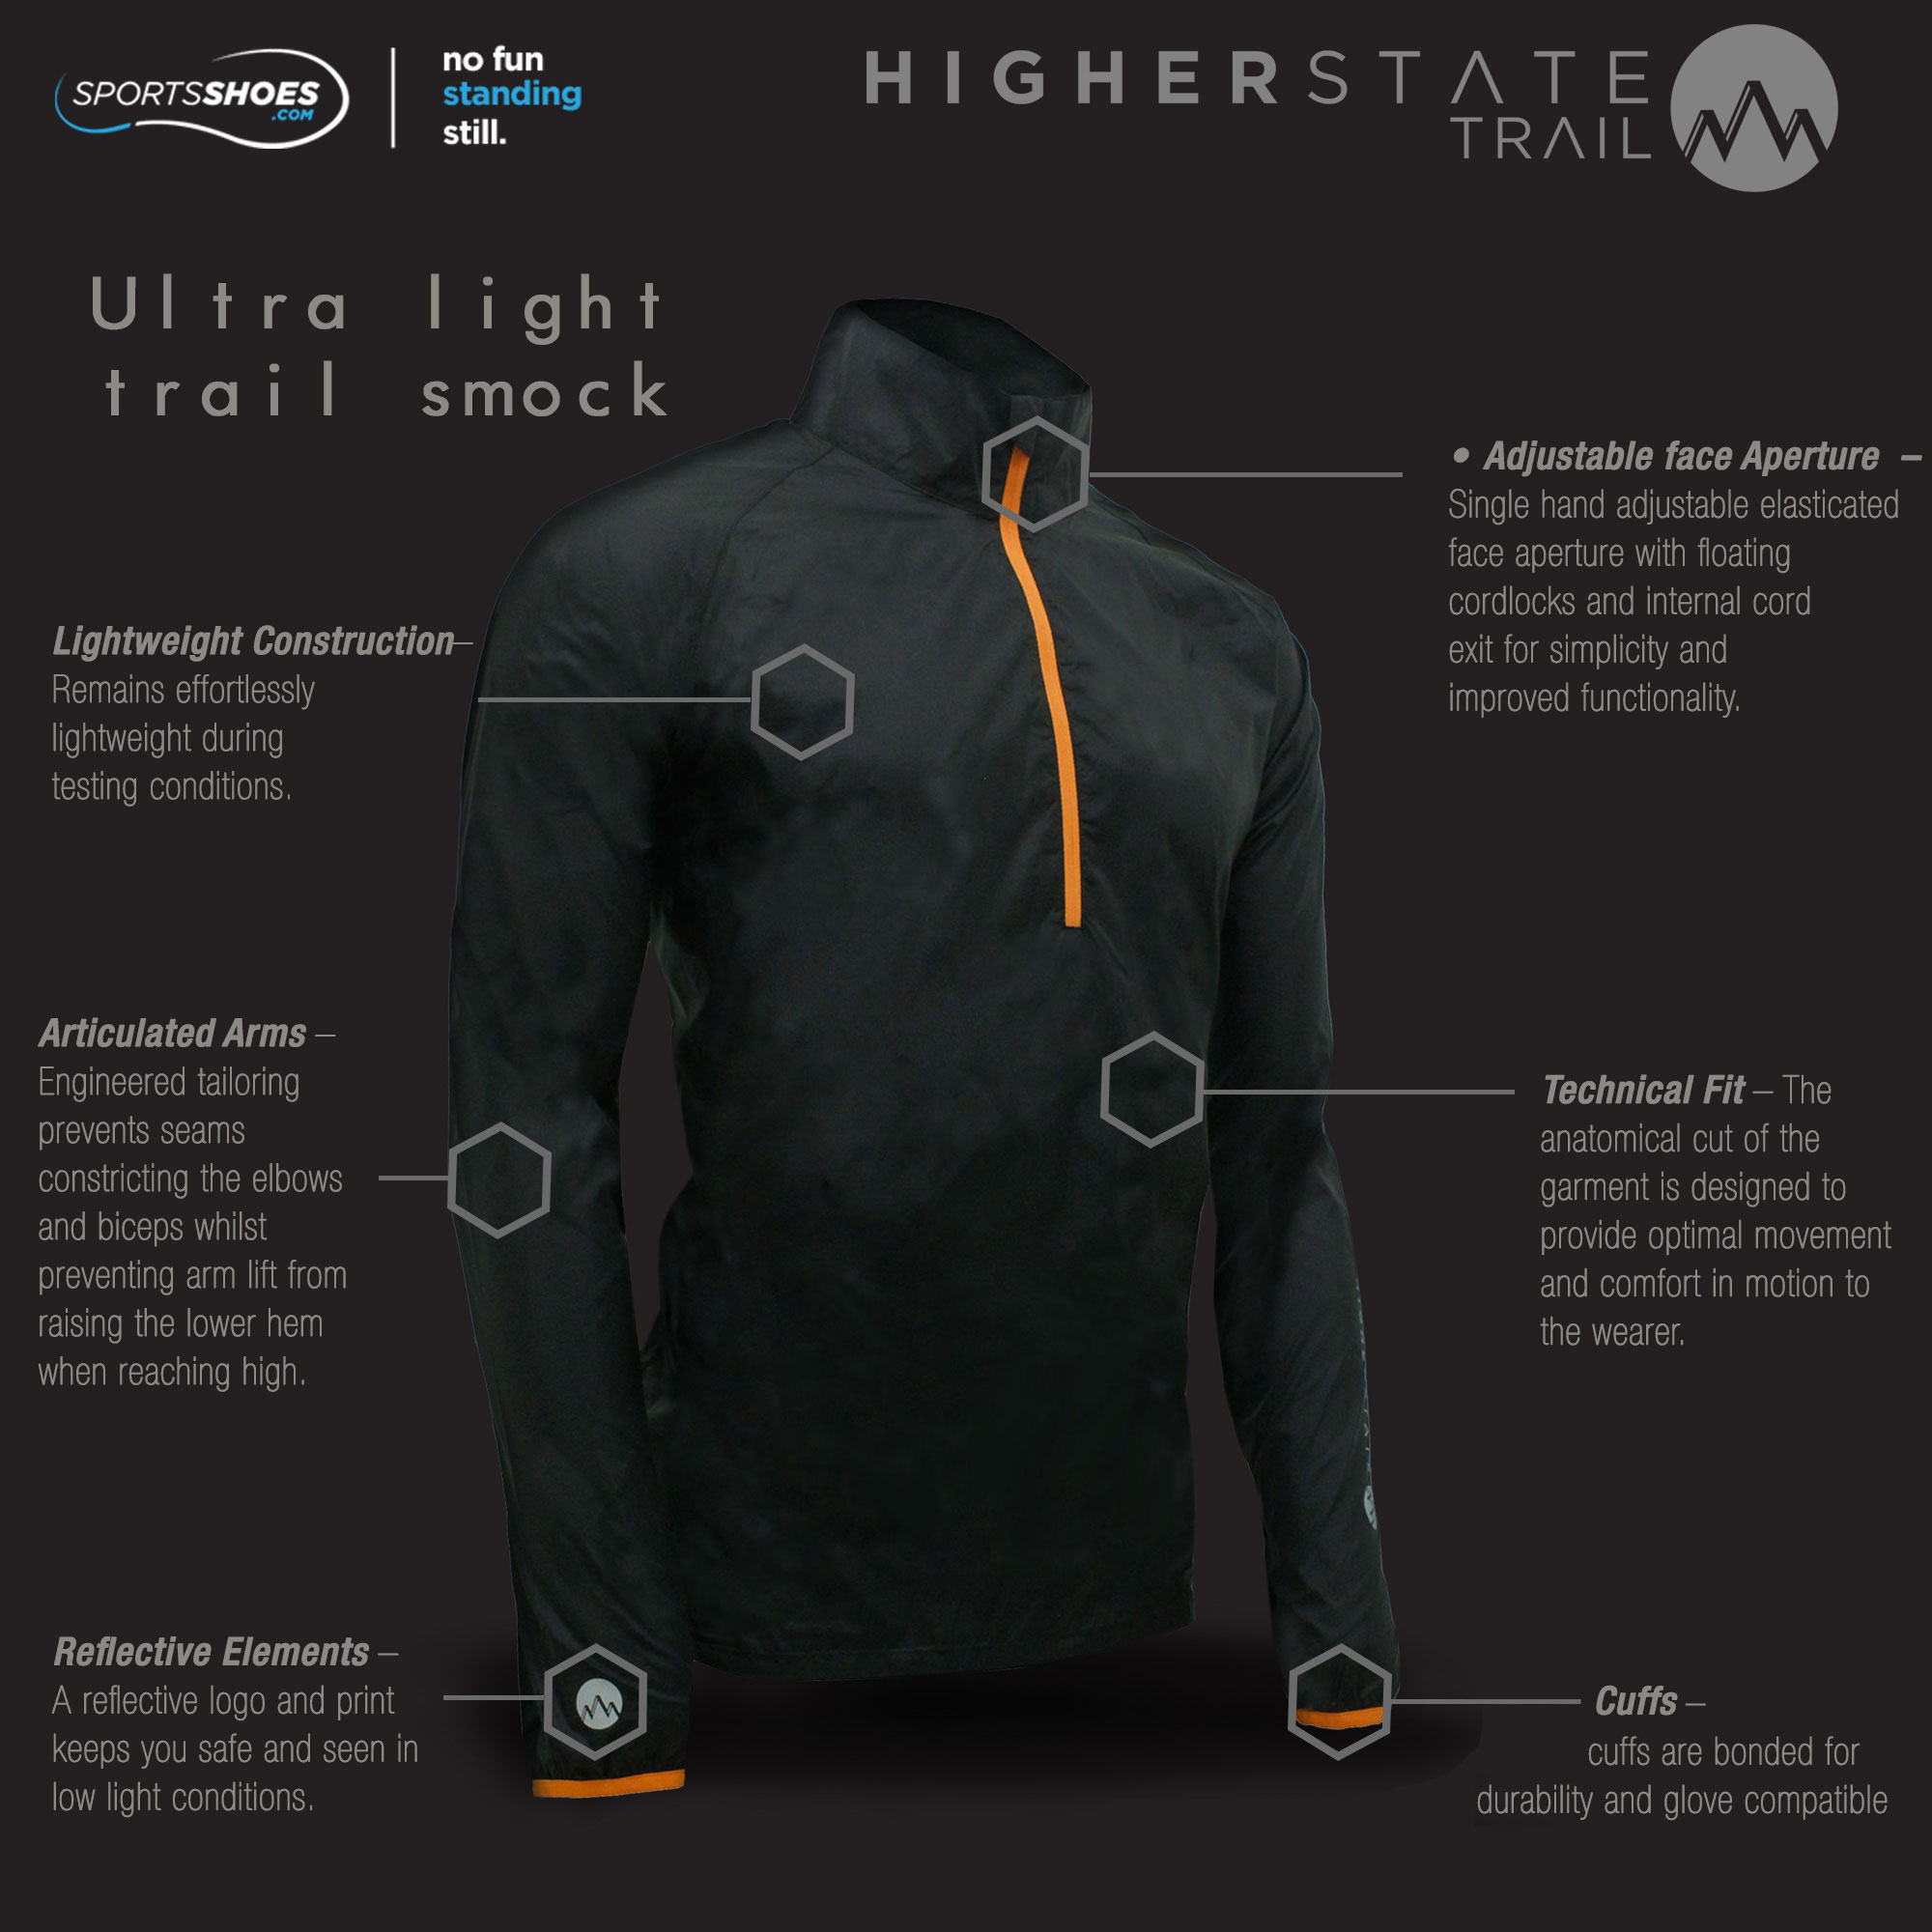 Higher State Trail Ultra Lite Smock Sportsshoes Com